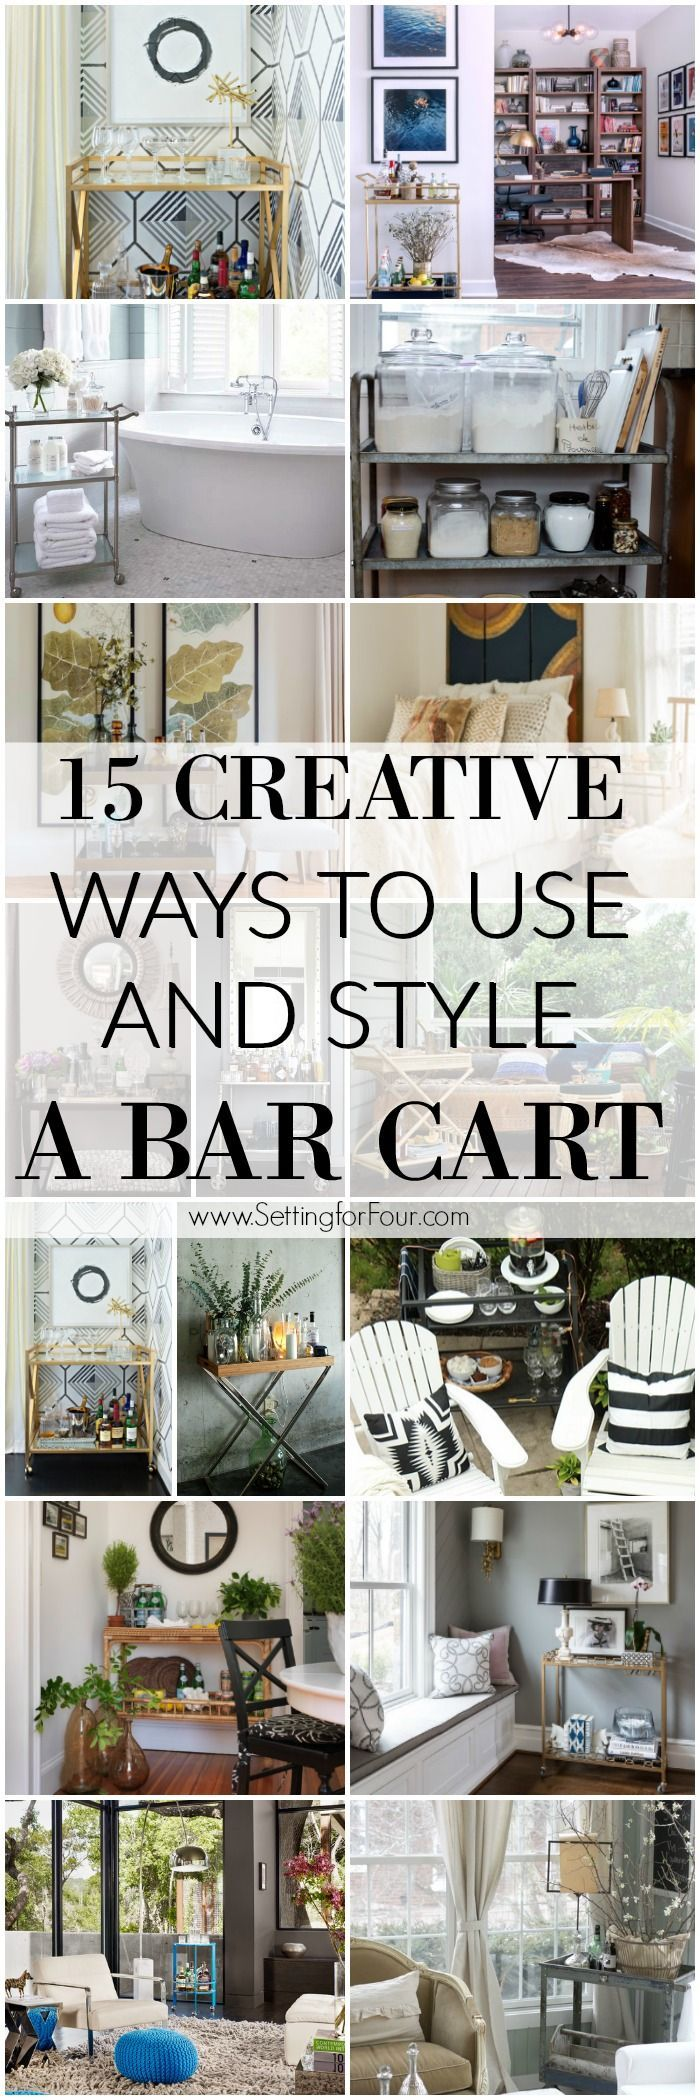 15 Creative Ways To Use and Style A Bar Cart